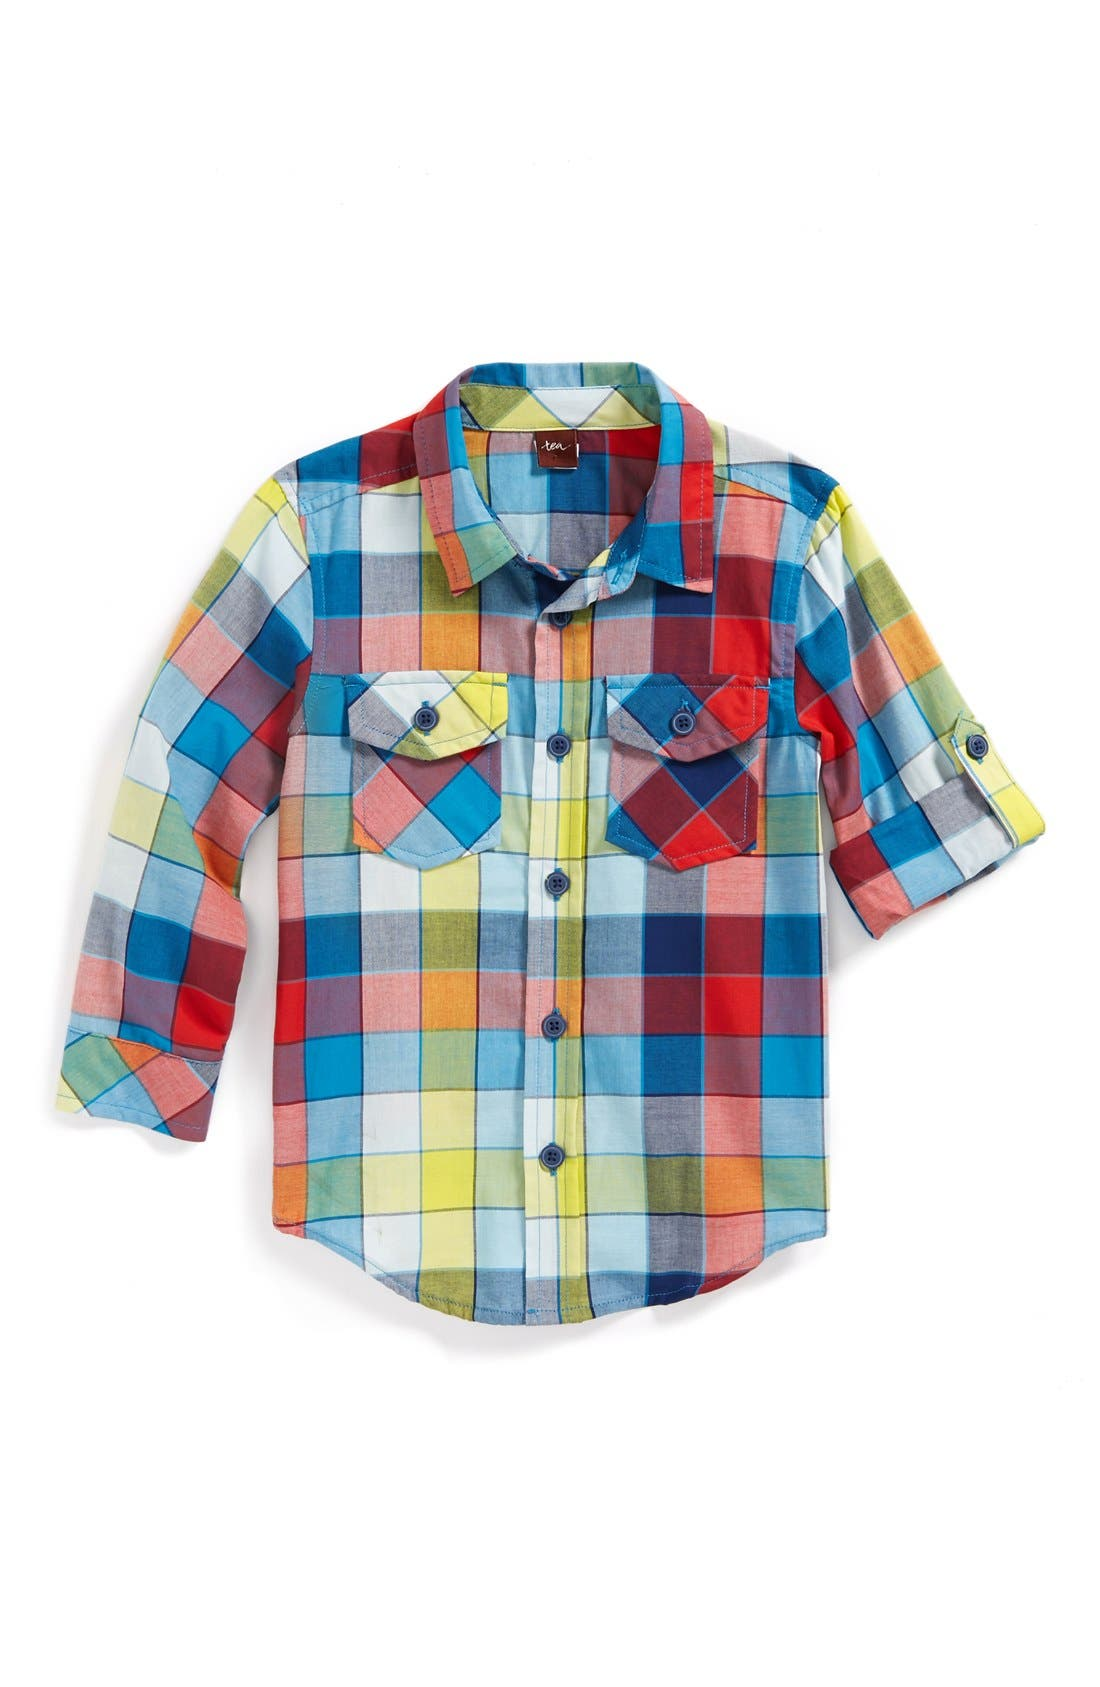 Alternate Image 1 Selected - Tea Collection 'Medina' Plaid Shirt (Toddler Boys)